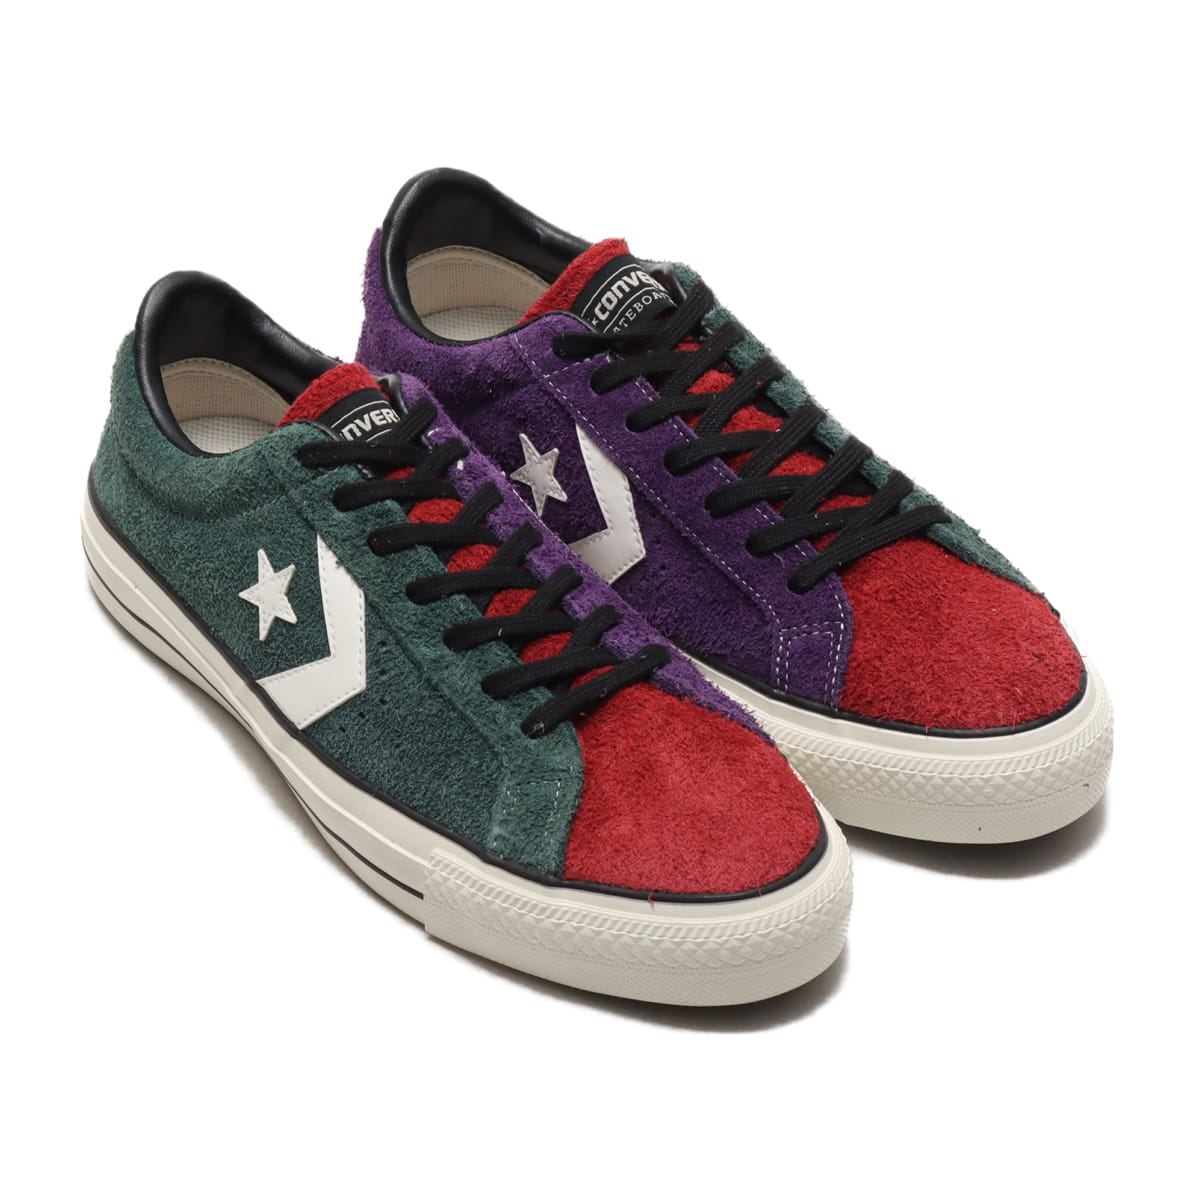 CONVERSE PRORIDE SK OX+ グリーン/レッド/パープル 20FW-I_photo_large